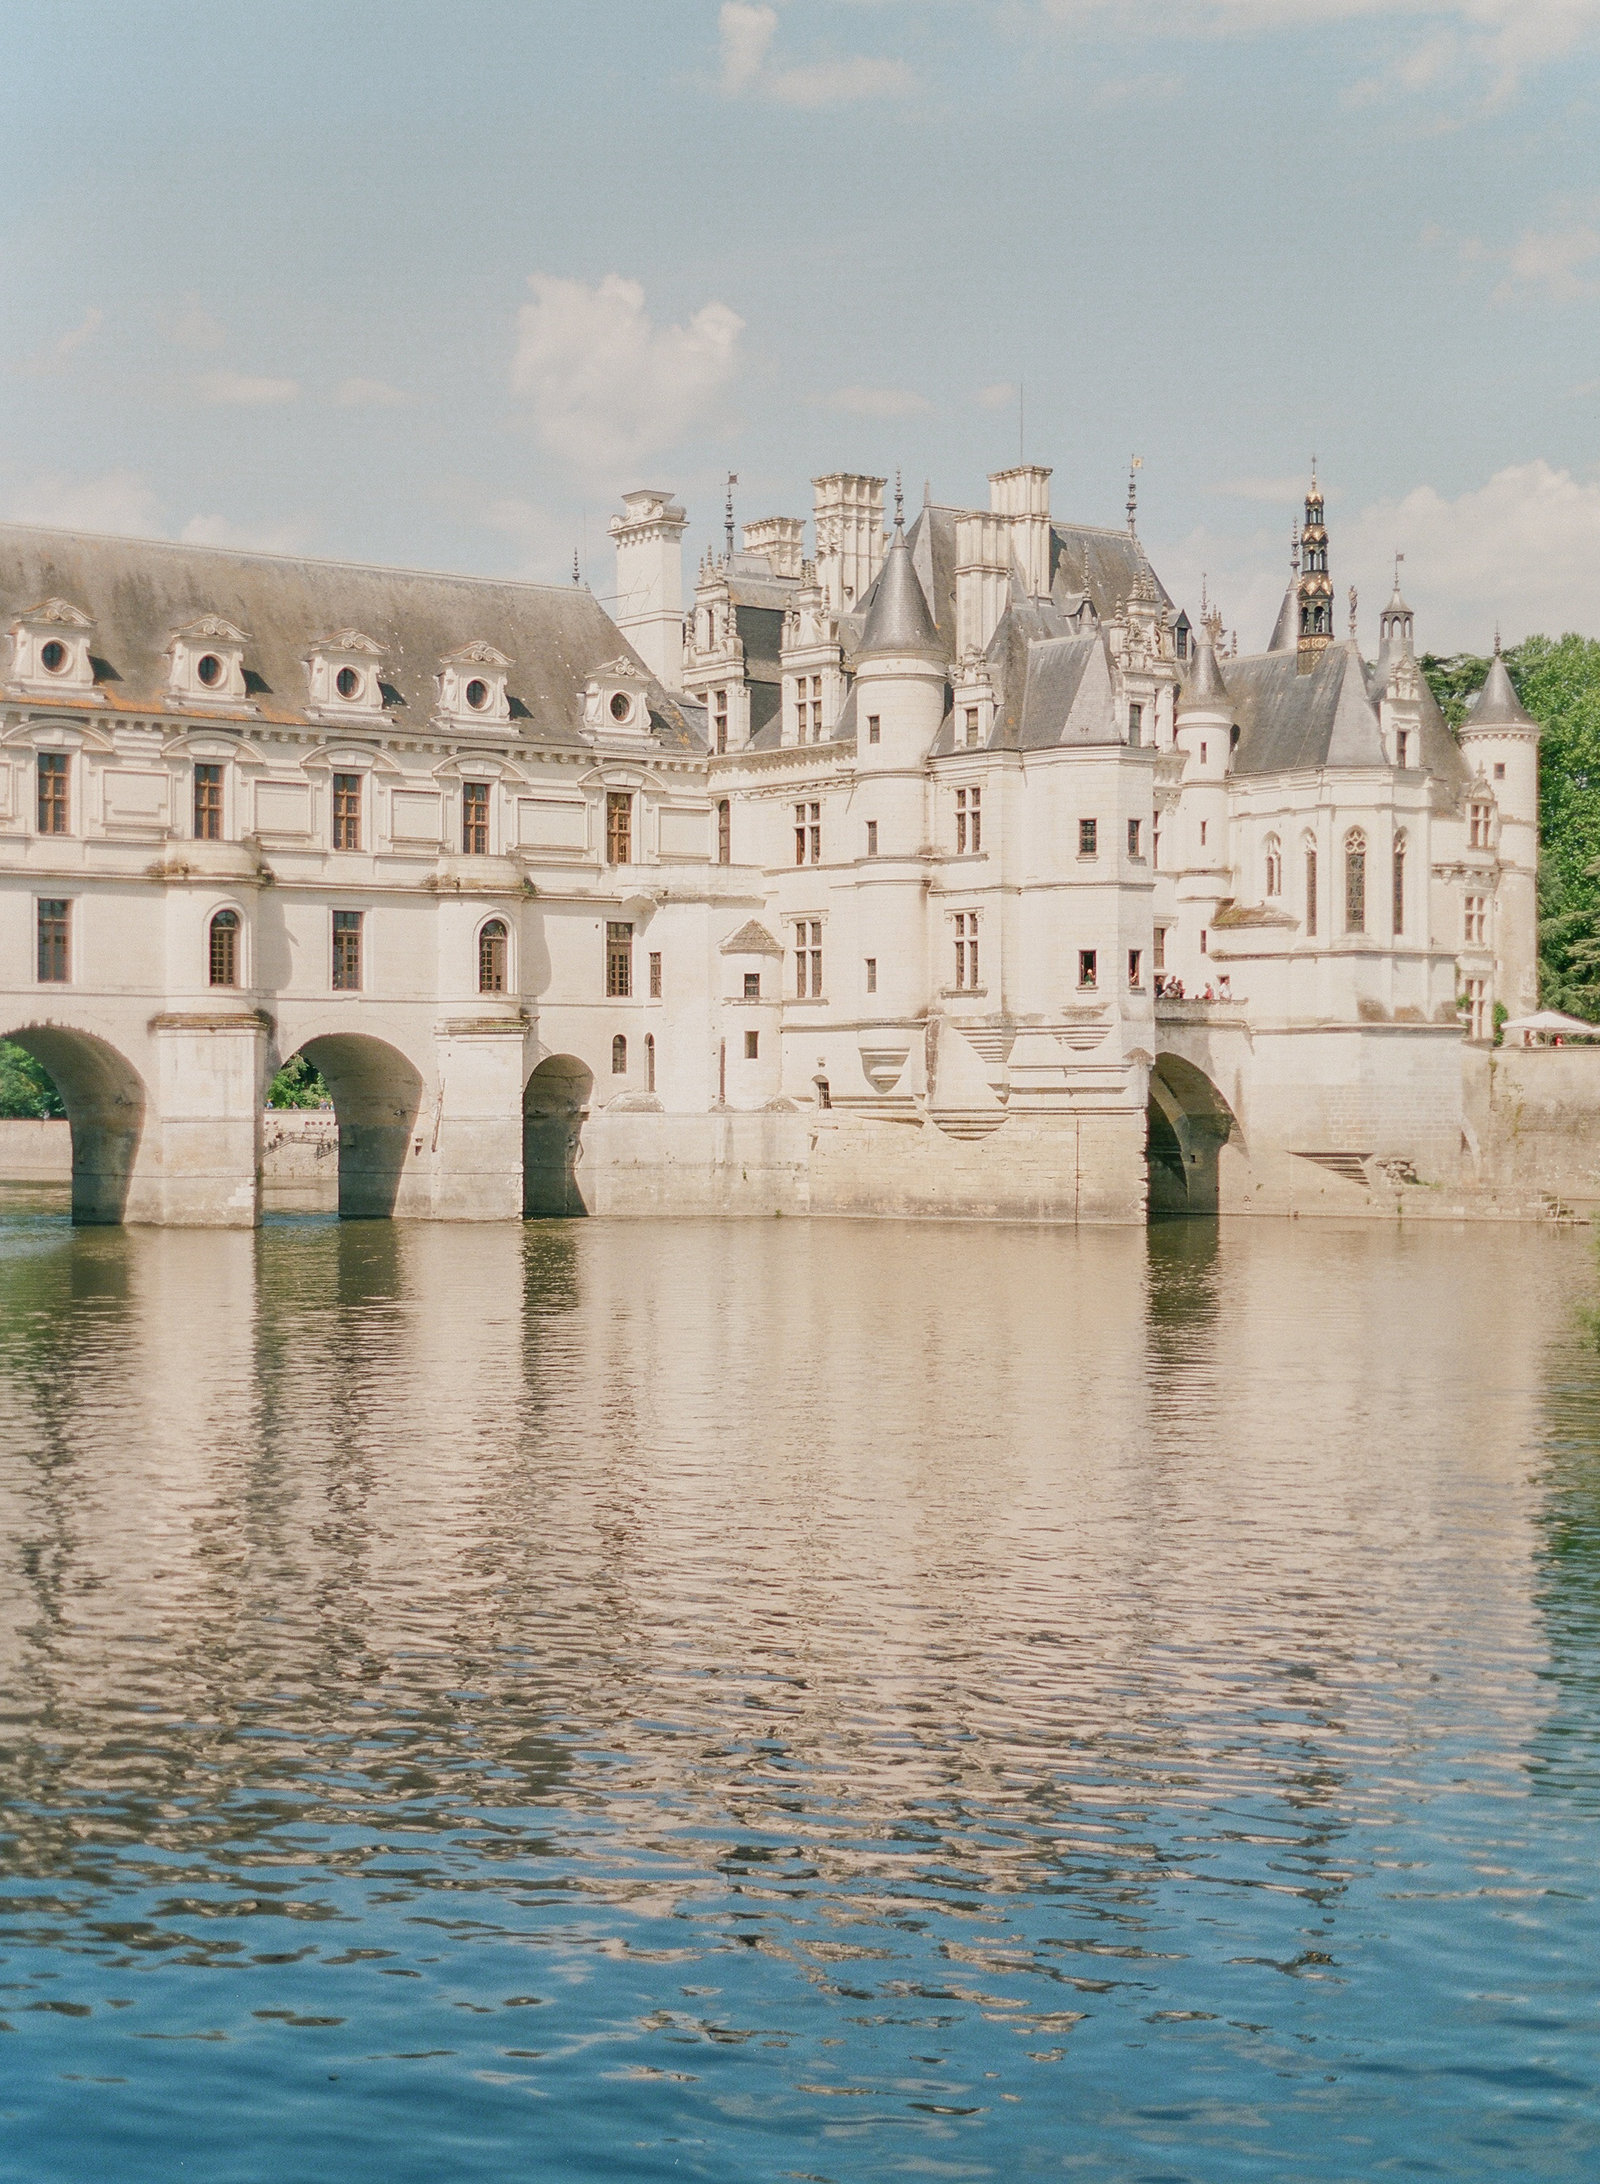 Chateaux de Chenonceau. France chateaux. French chateaux. Loire Valley. Best chateaus in the Loire Valley. Loire Valley wedding. Chateaux wedding. Chateau wedding. Paris wedding photographer. Paris wedding photography. France wedding photographer. Paris destination wedding.